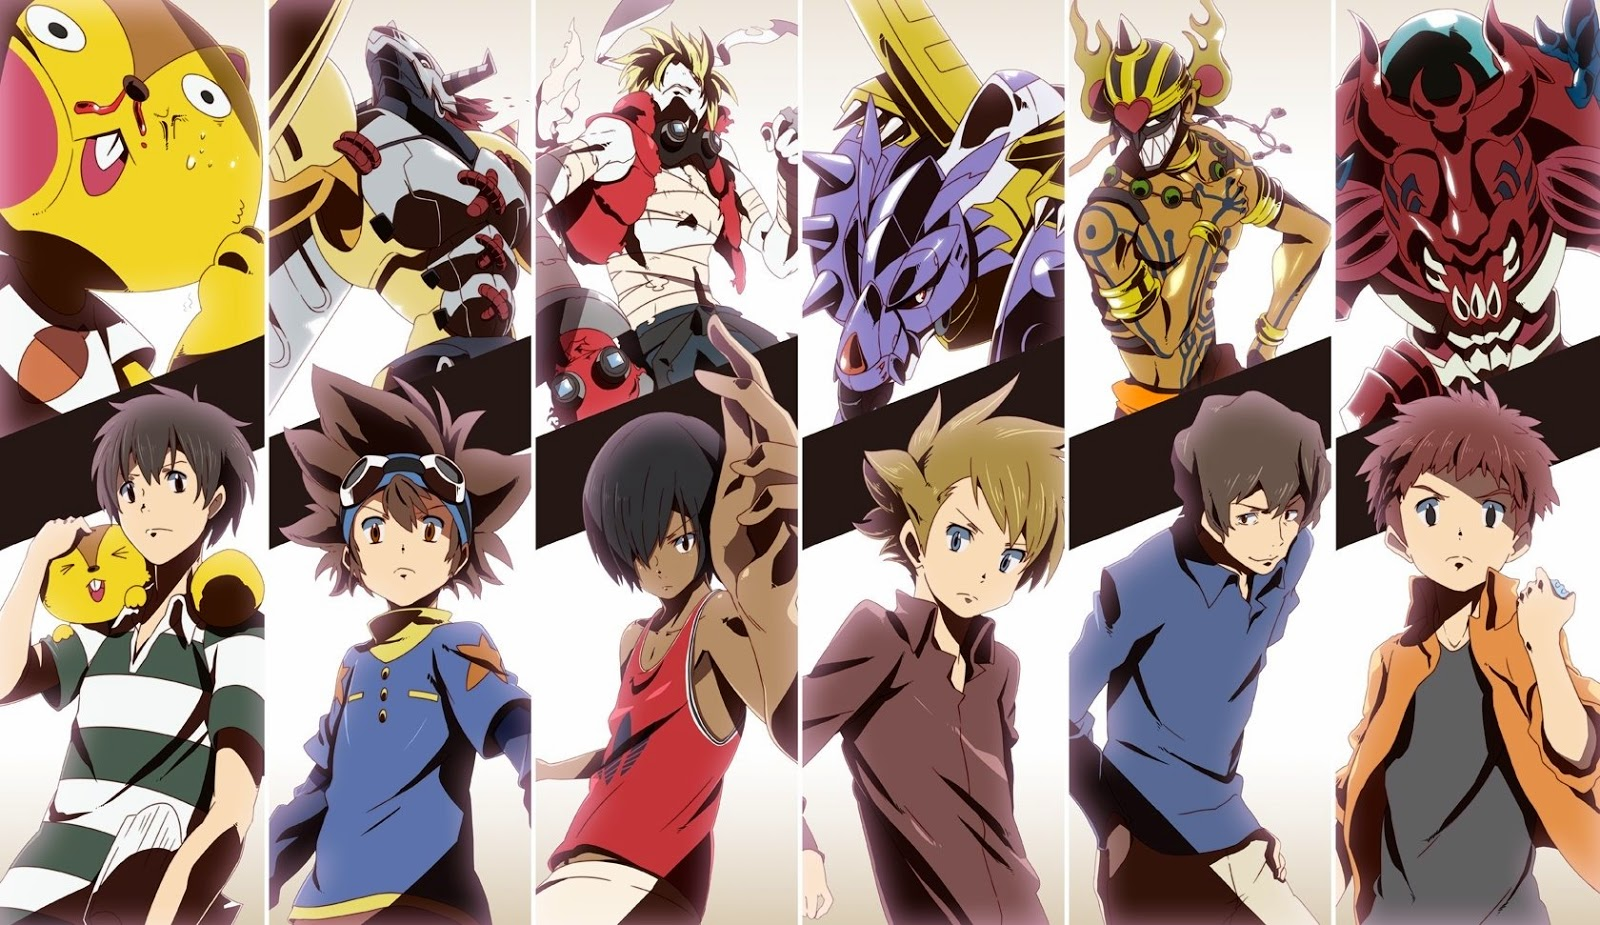 http://gallerycartoon.blogspot.com/2015/03/cartoon-pictures-digimon-5.html